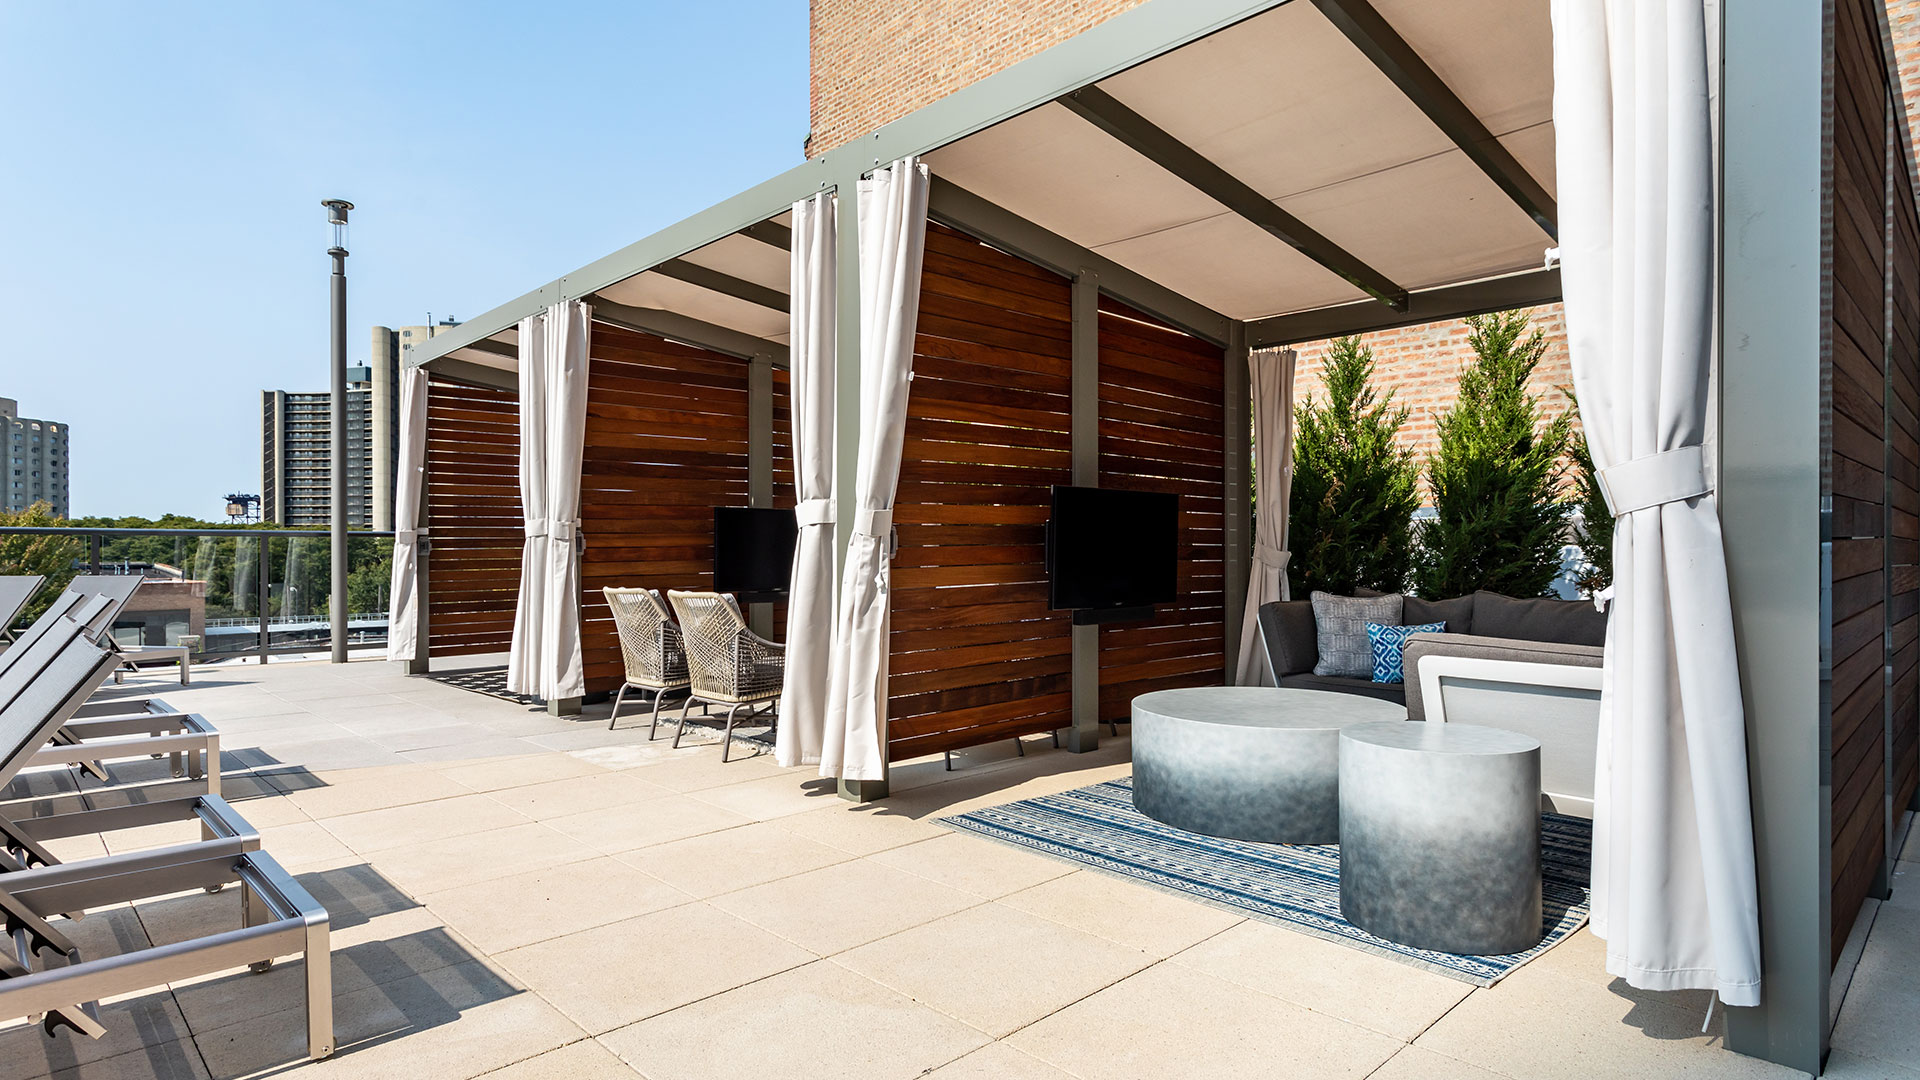 A row of private cabanas on the outdoor terrace. The curtains are open on each and furniture can be seen within each.